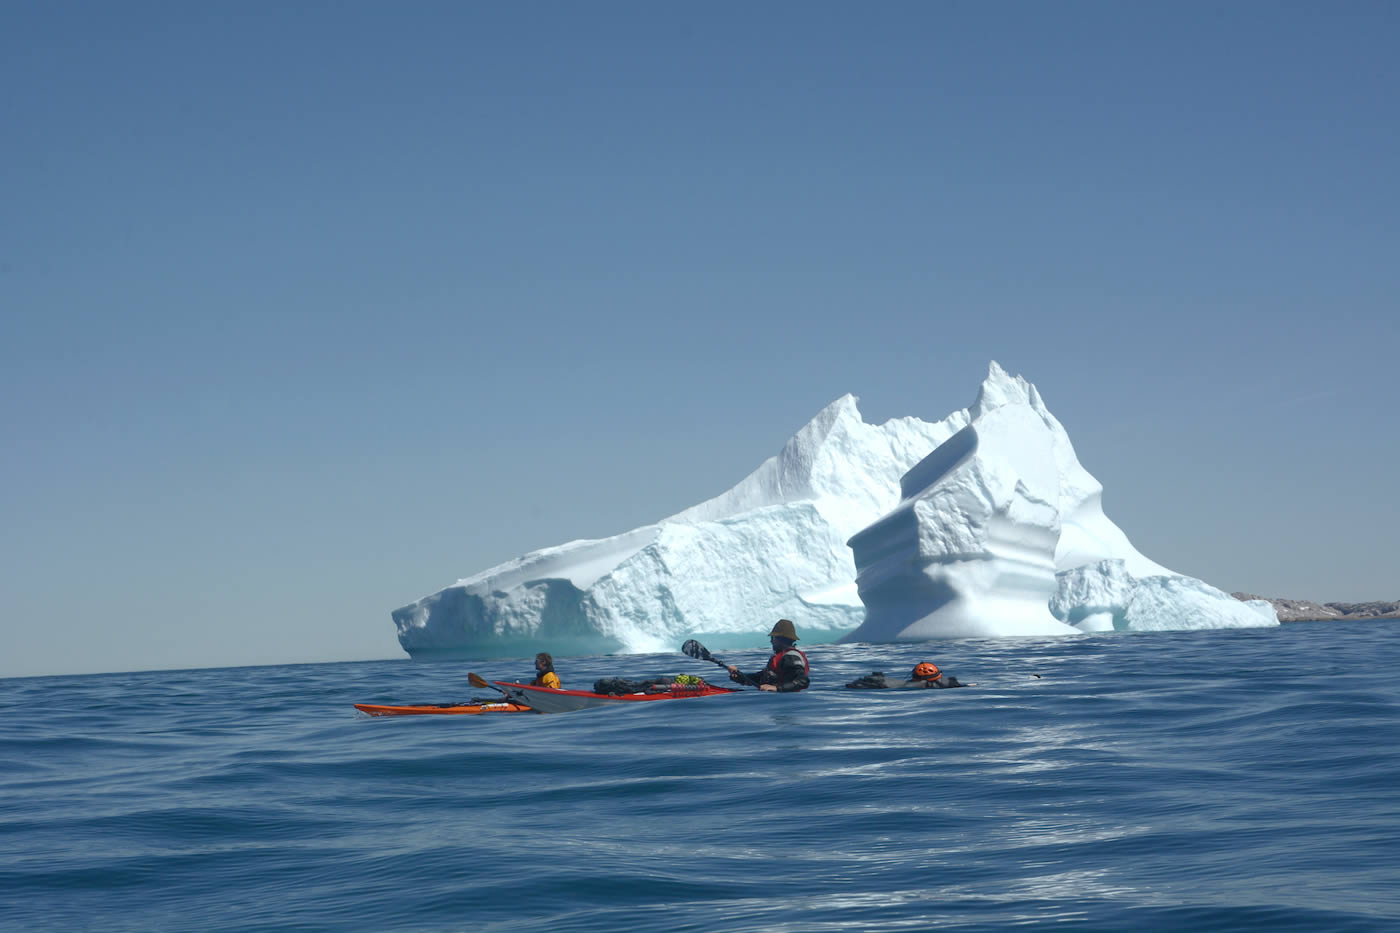 Antoine Moineville and Christian Laddy Ledergerber paddle in the North Atlantic Ocean. [Photo] Silvan Schuepbach